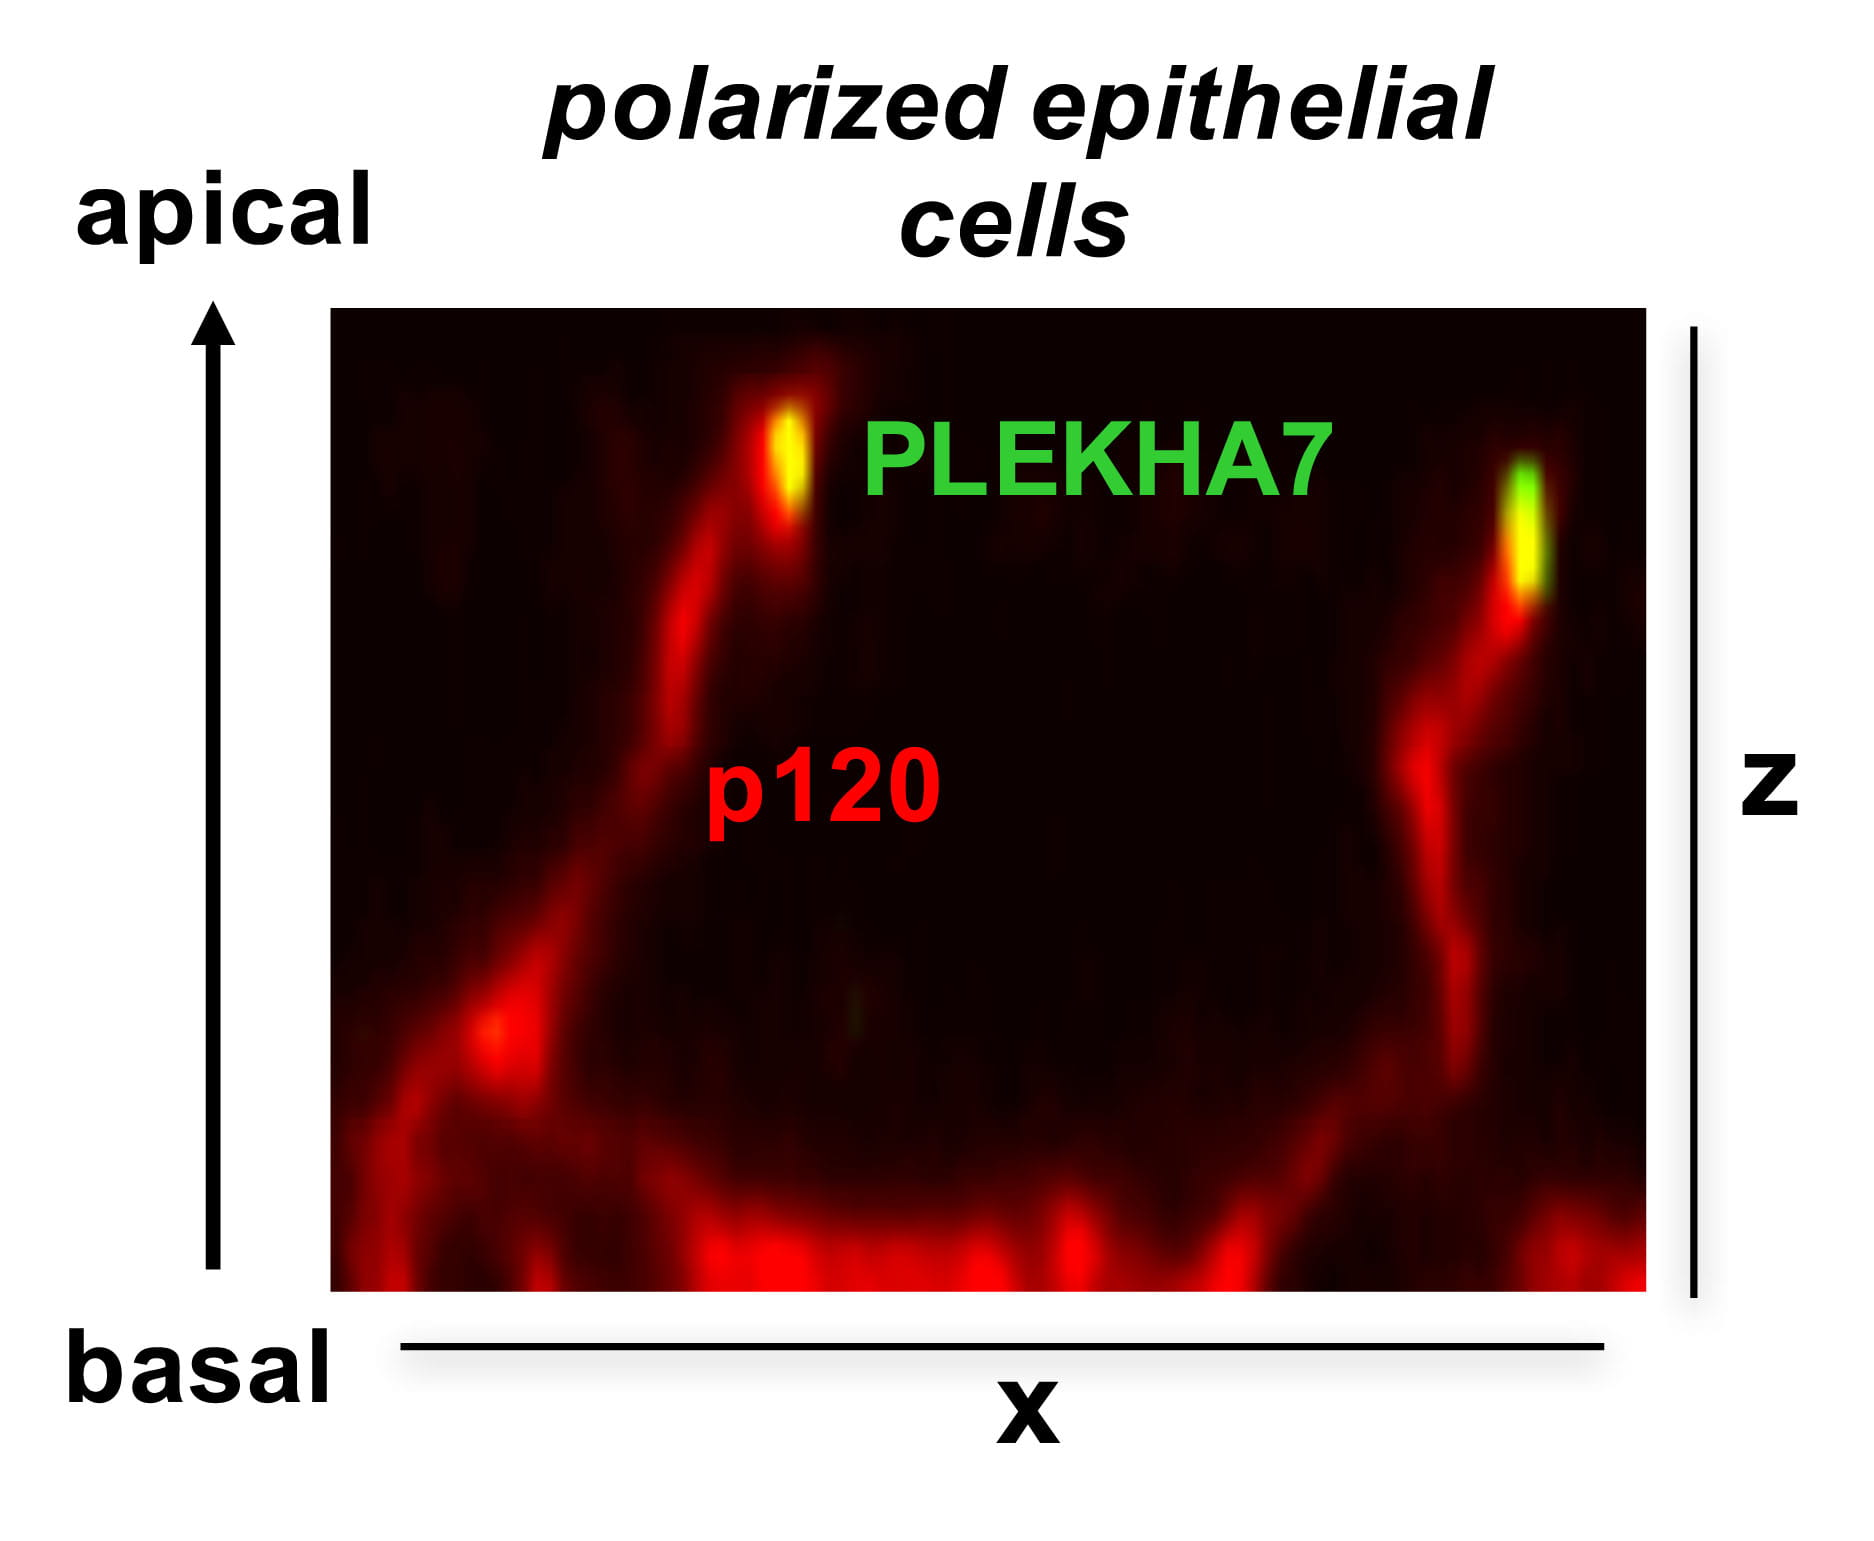 Expression of adherens junction proteins in polarized epithelial cells